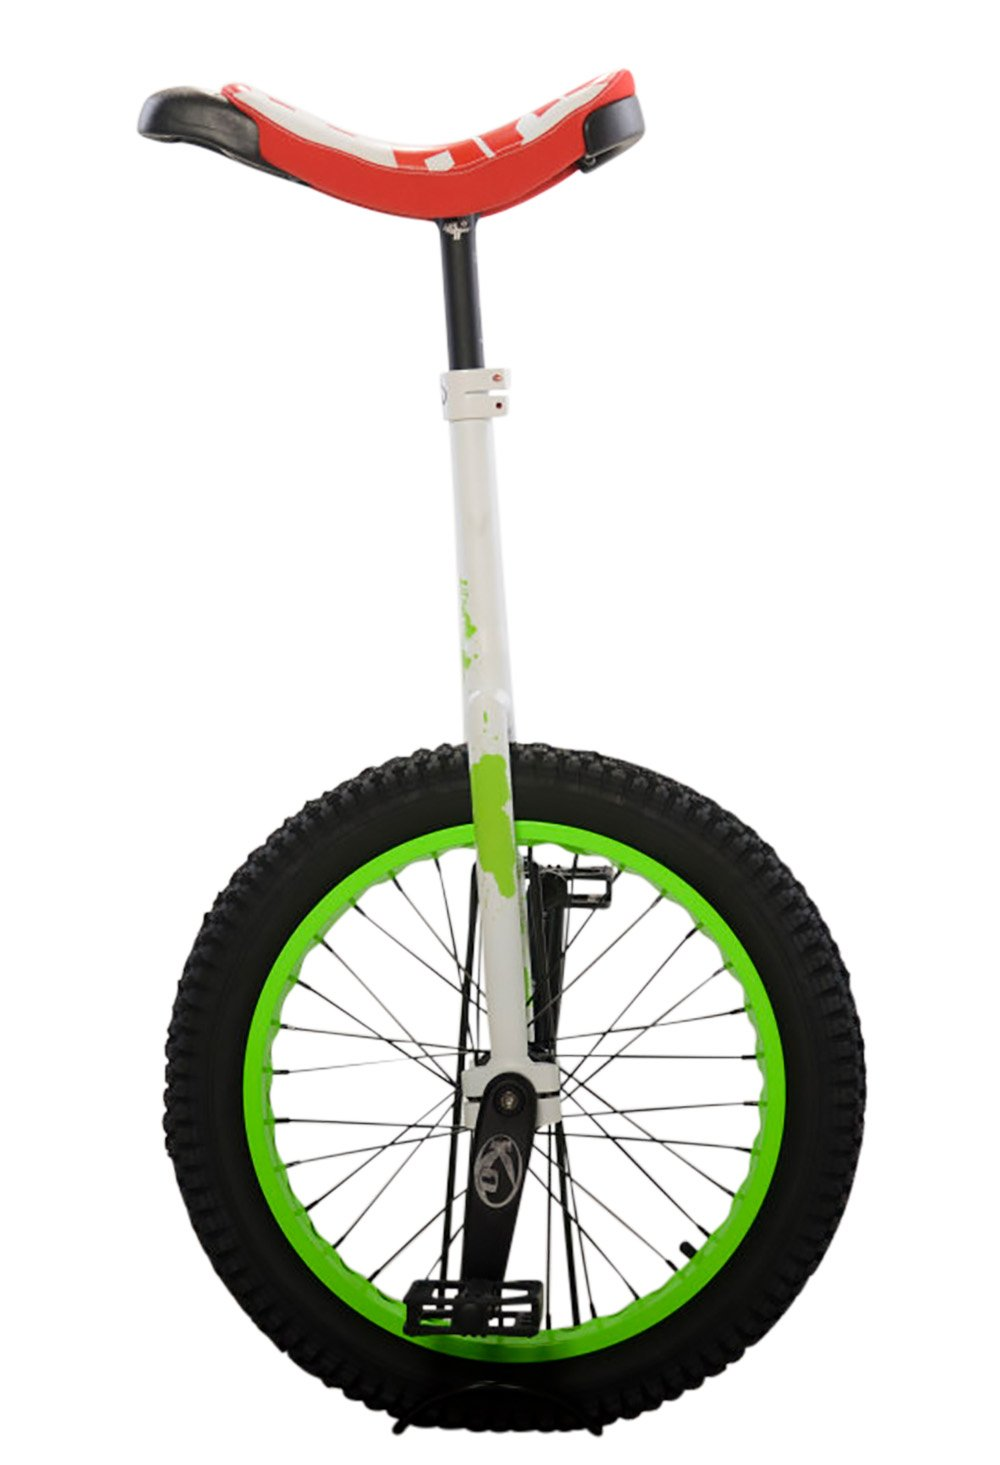 Koxx Troll2 20 Trials Unicycle, Red/White with Green Rims and Black Pedals